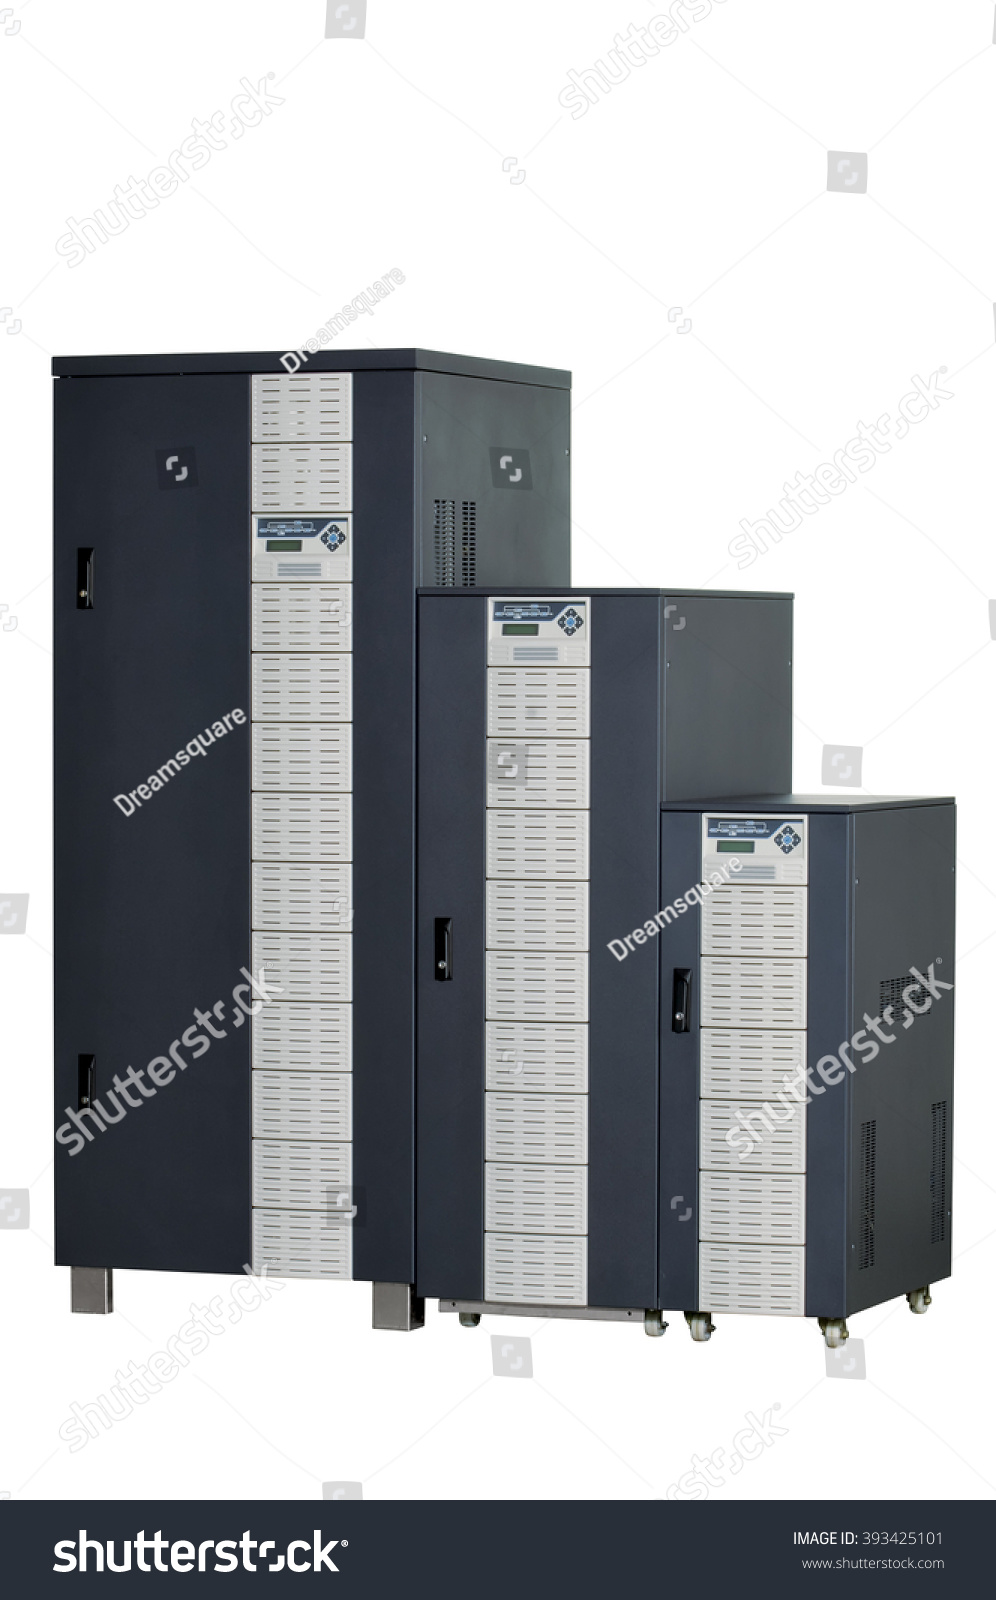 Electrical Enclosure Door Closed Could Be Stock Photo 393425101 ...